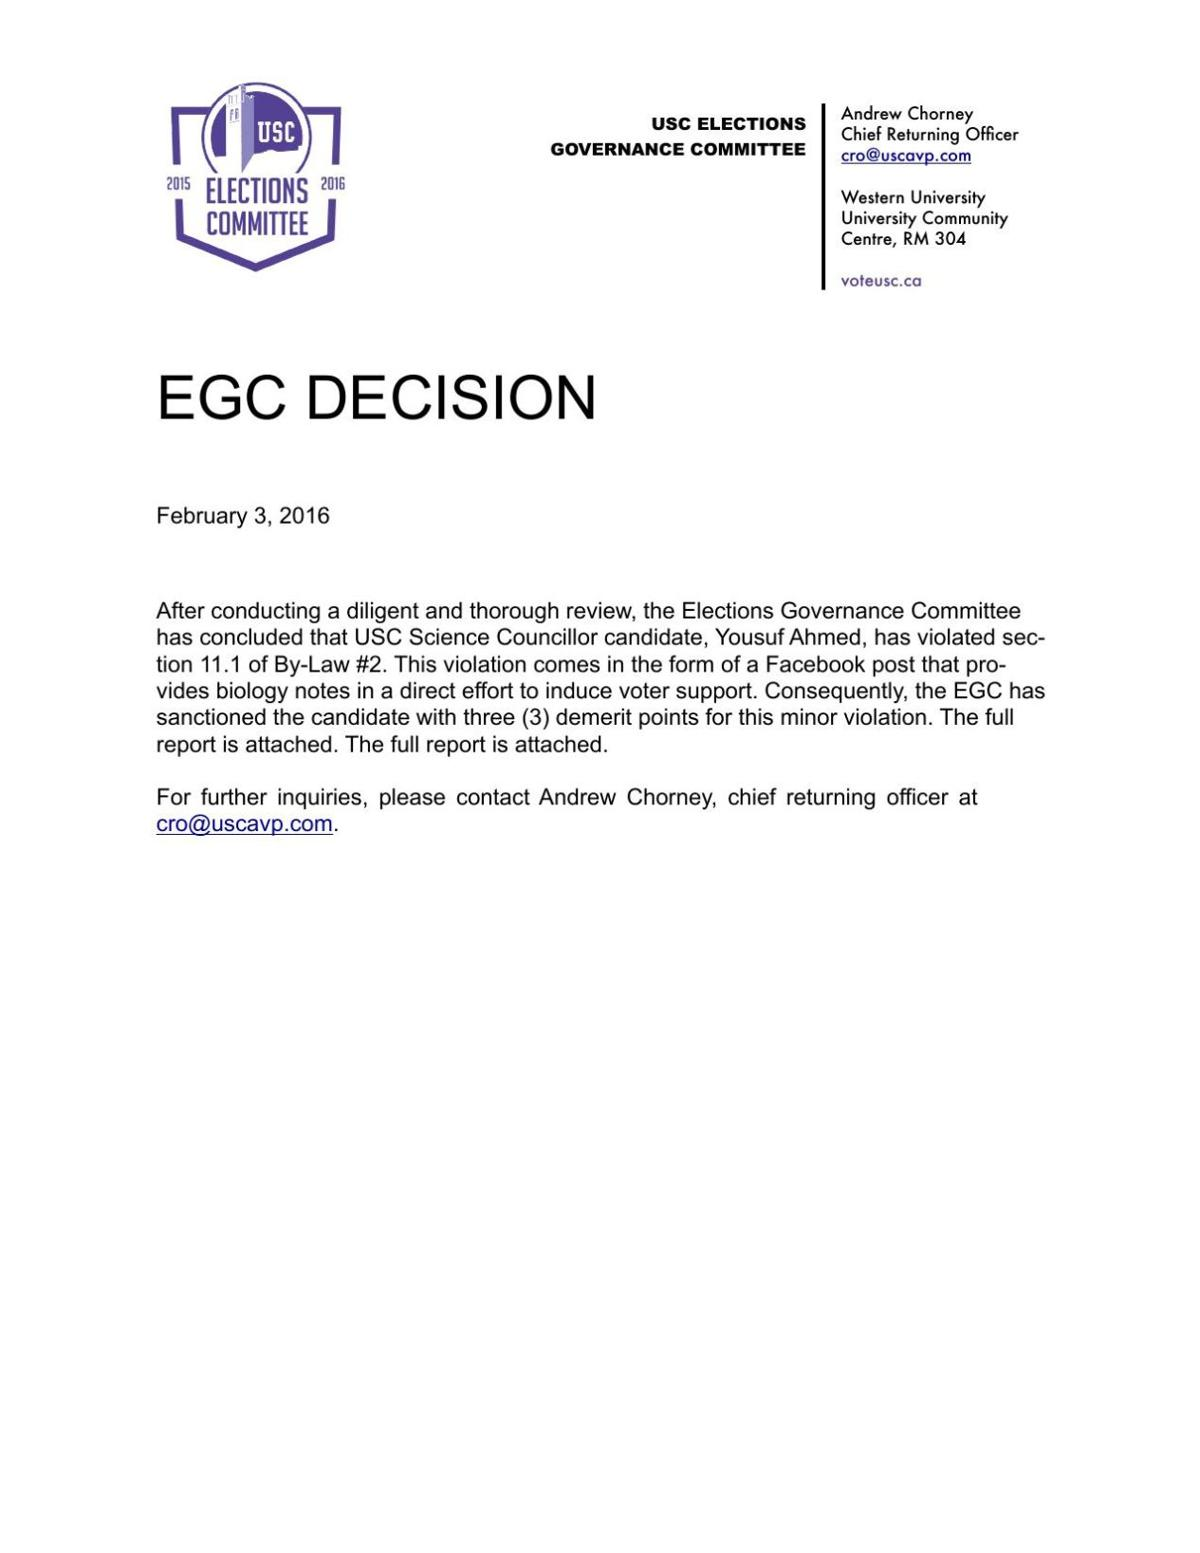 EGC Decision re: Ahmed, Yousuf